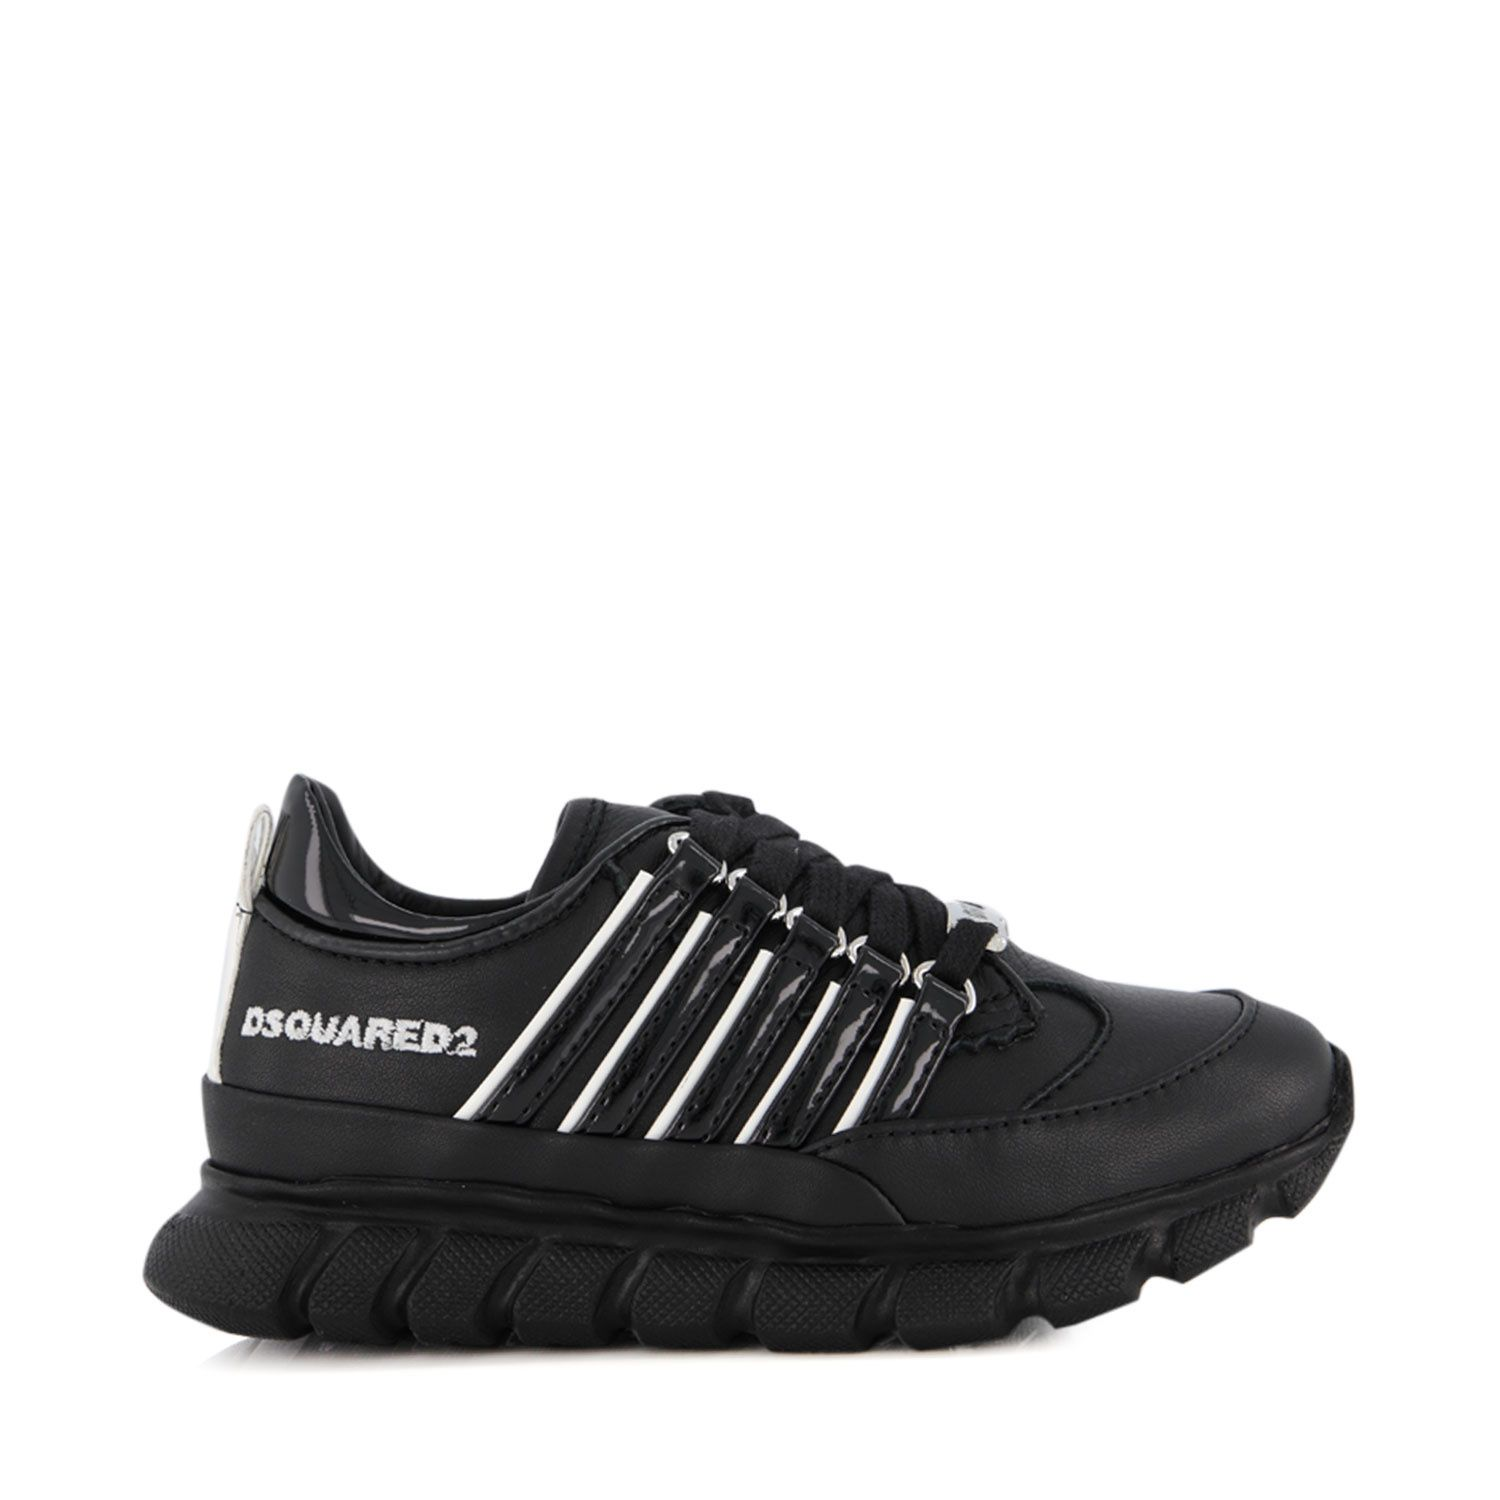 Picture of Dsquared2 65111 kids sneakers black